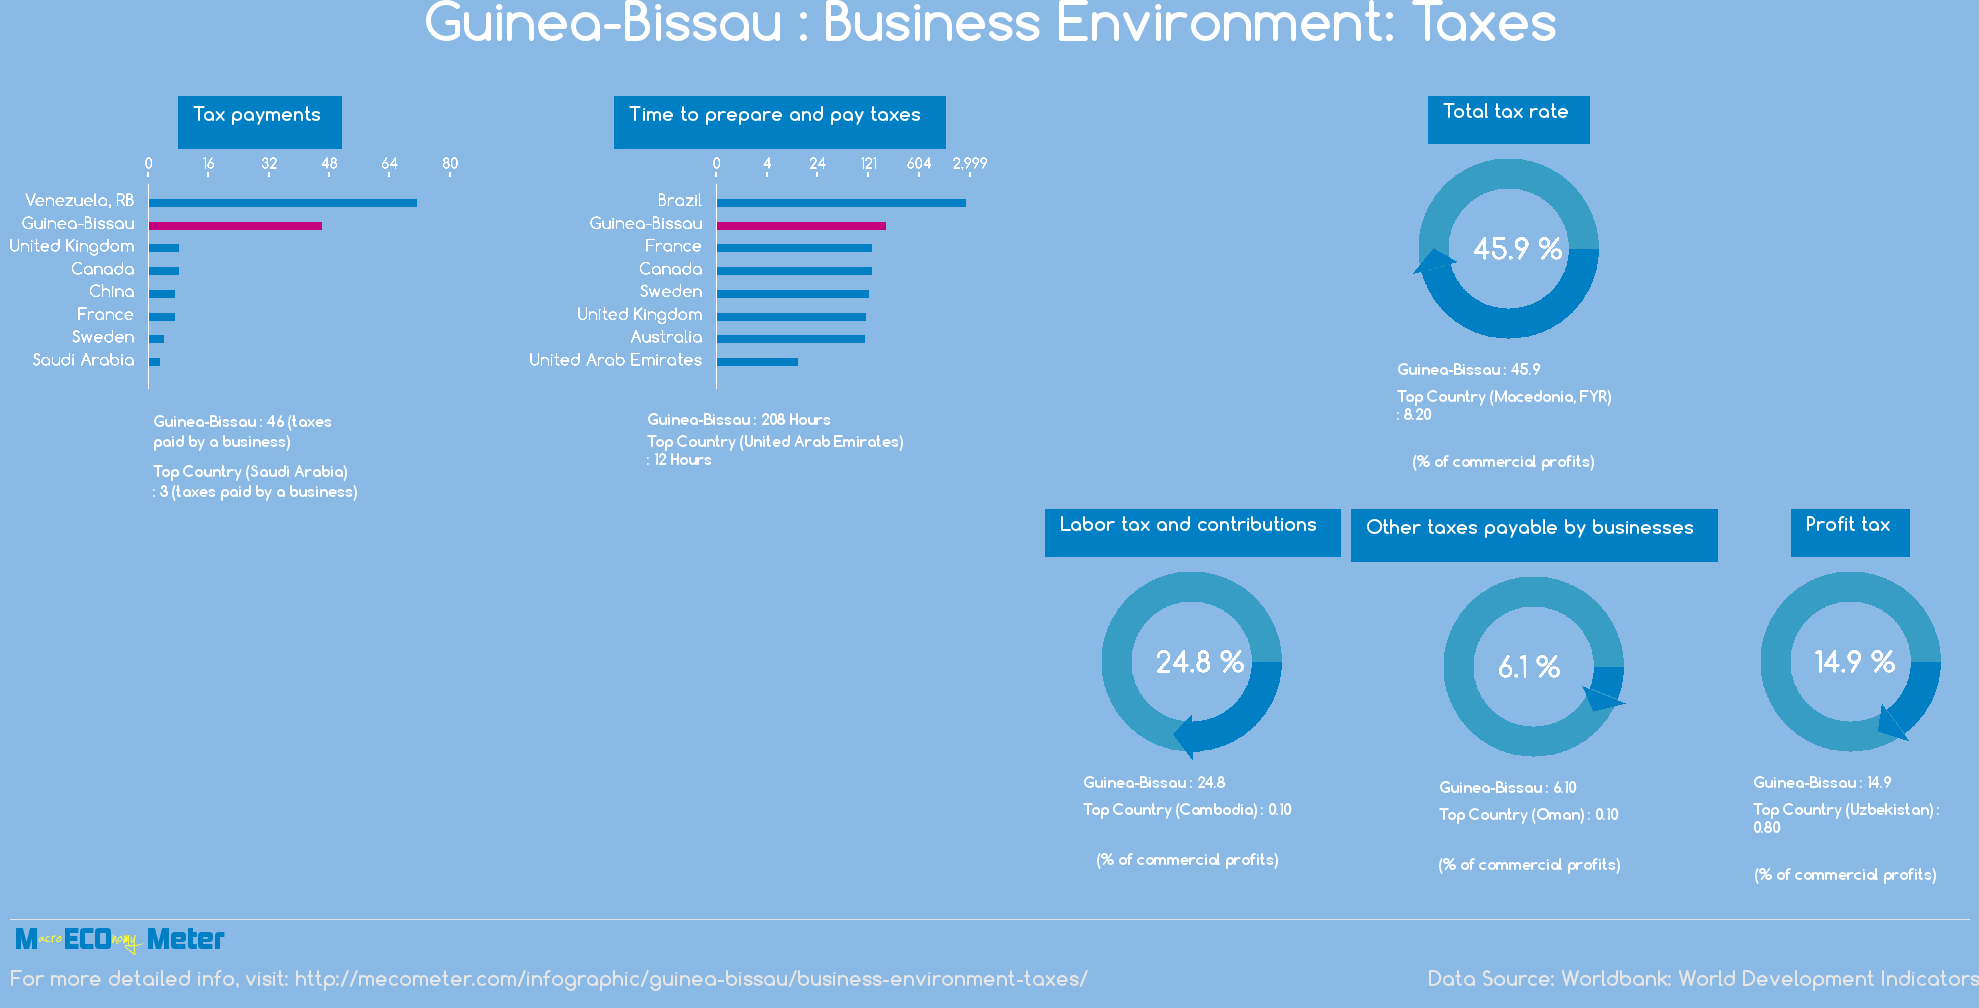 Guinea-Bissau : Business Environment: Taxes